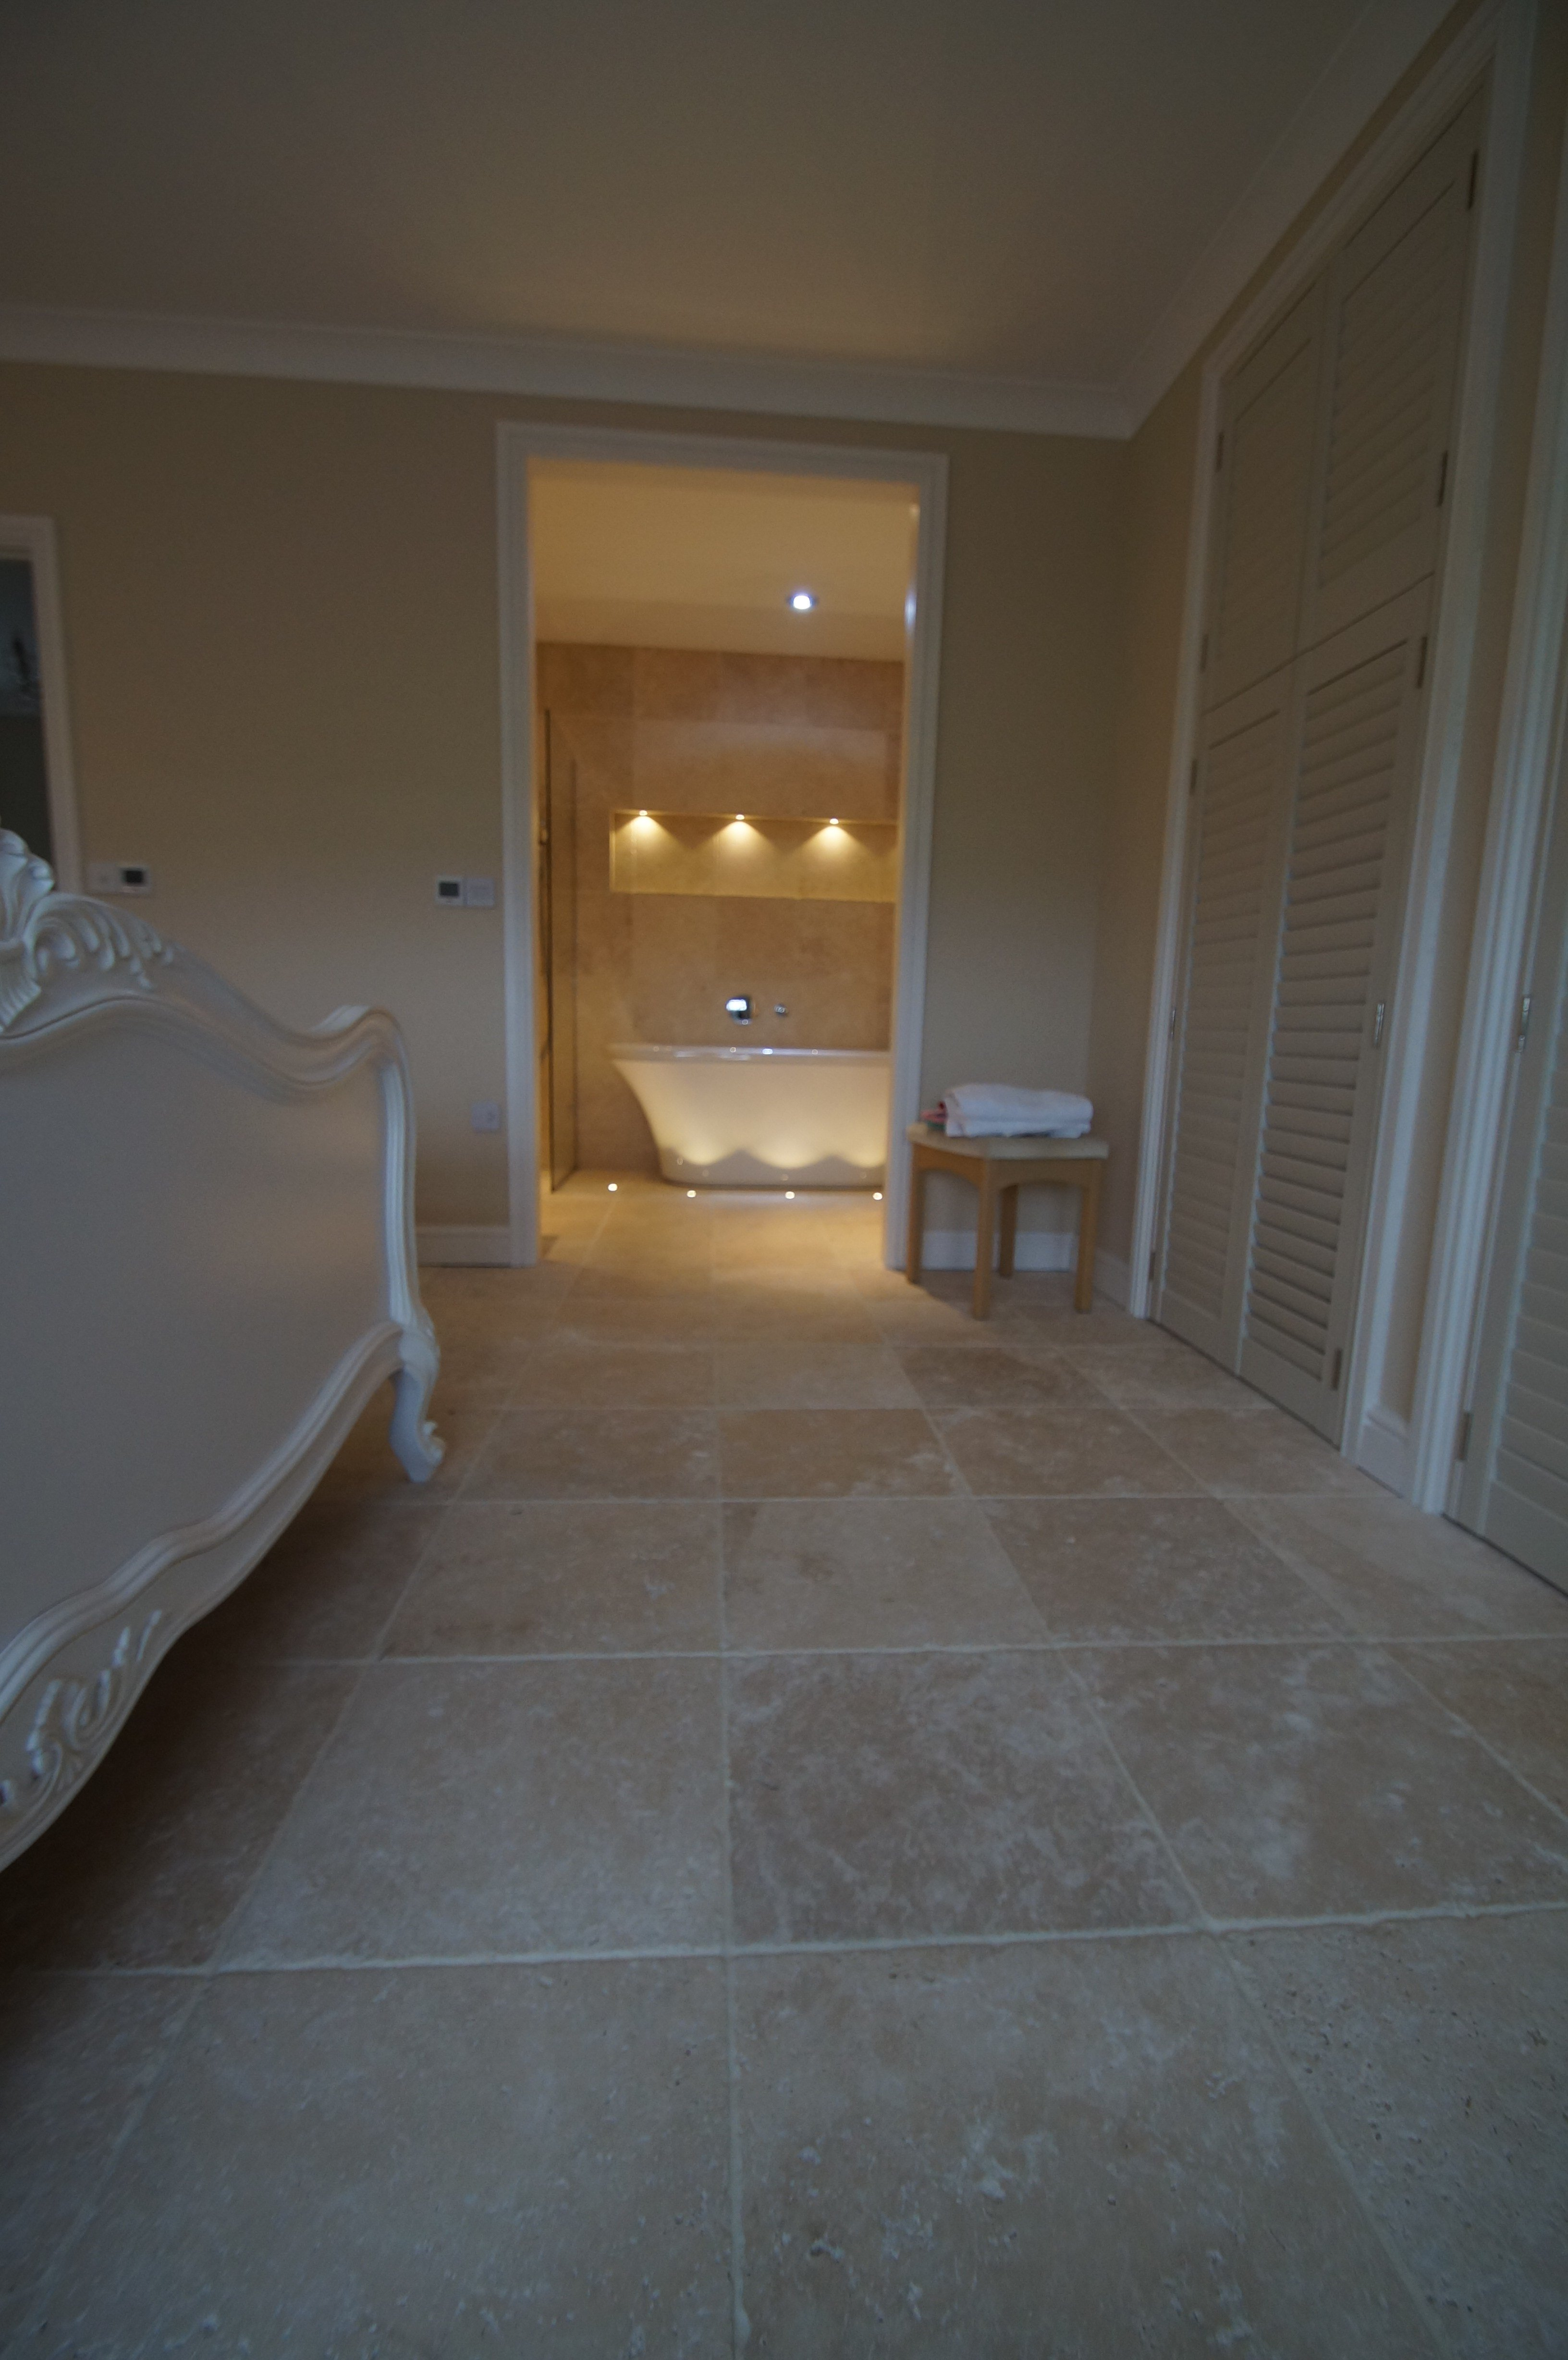 Best From Travertine Beds To Bedroom Floor – Inspirational Use With Pictures